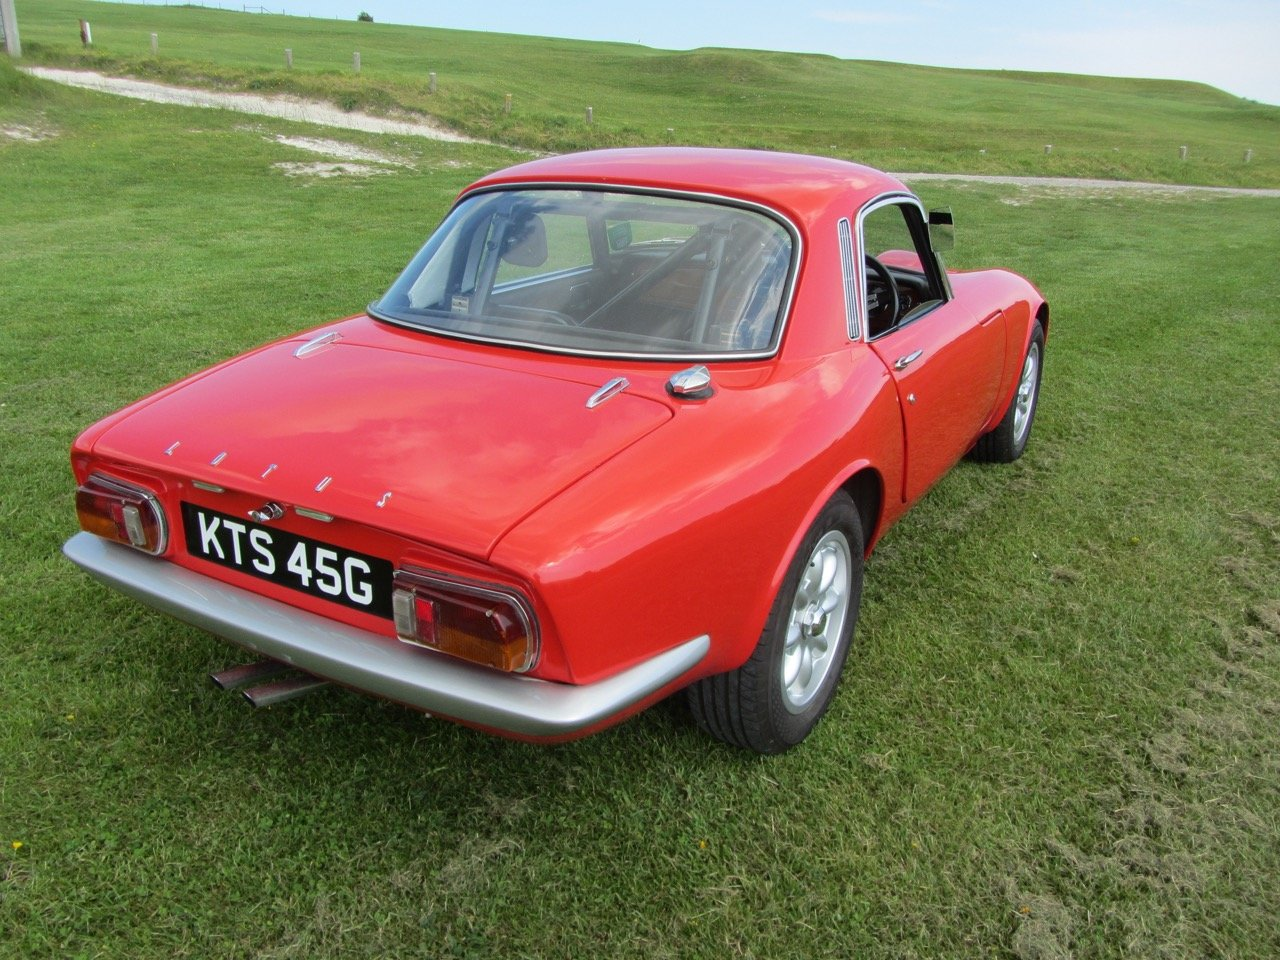 1969 Lotus Elan S4 SE FHC (26R evocation) For Sale (picture 4 of 6)